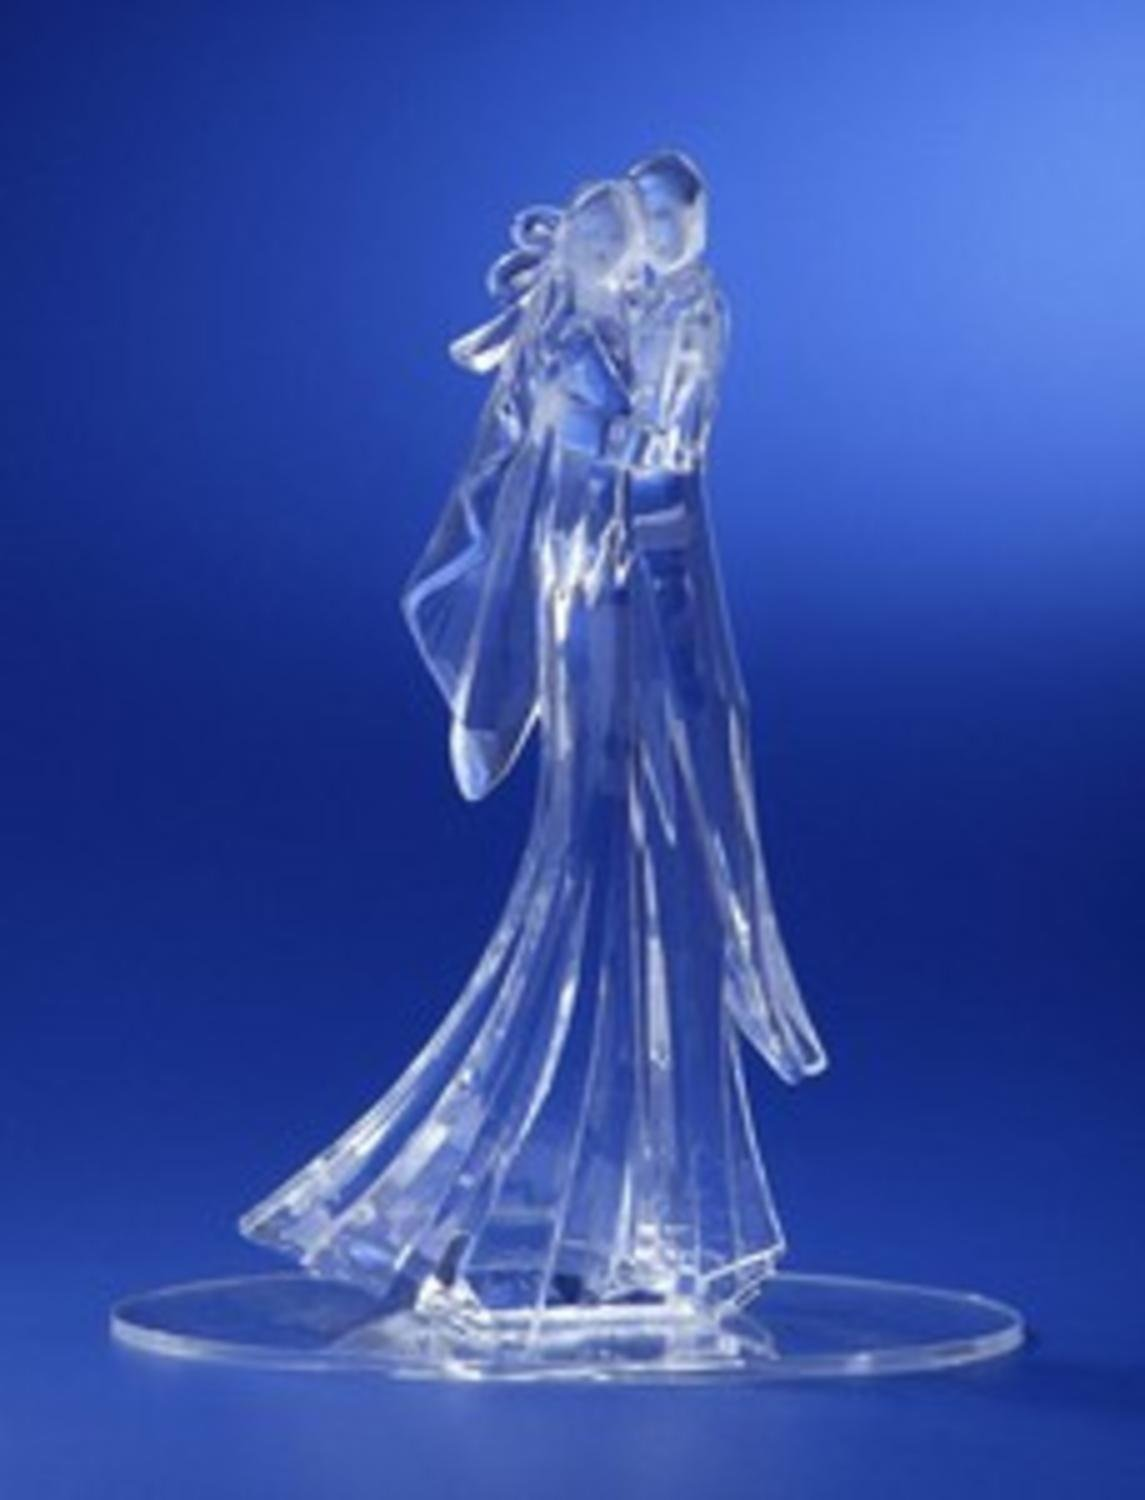 Pack of 4 Icy Crystal Wedding Bride and Groom Cake Topper 8.25''